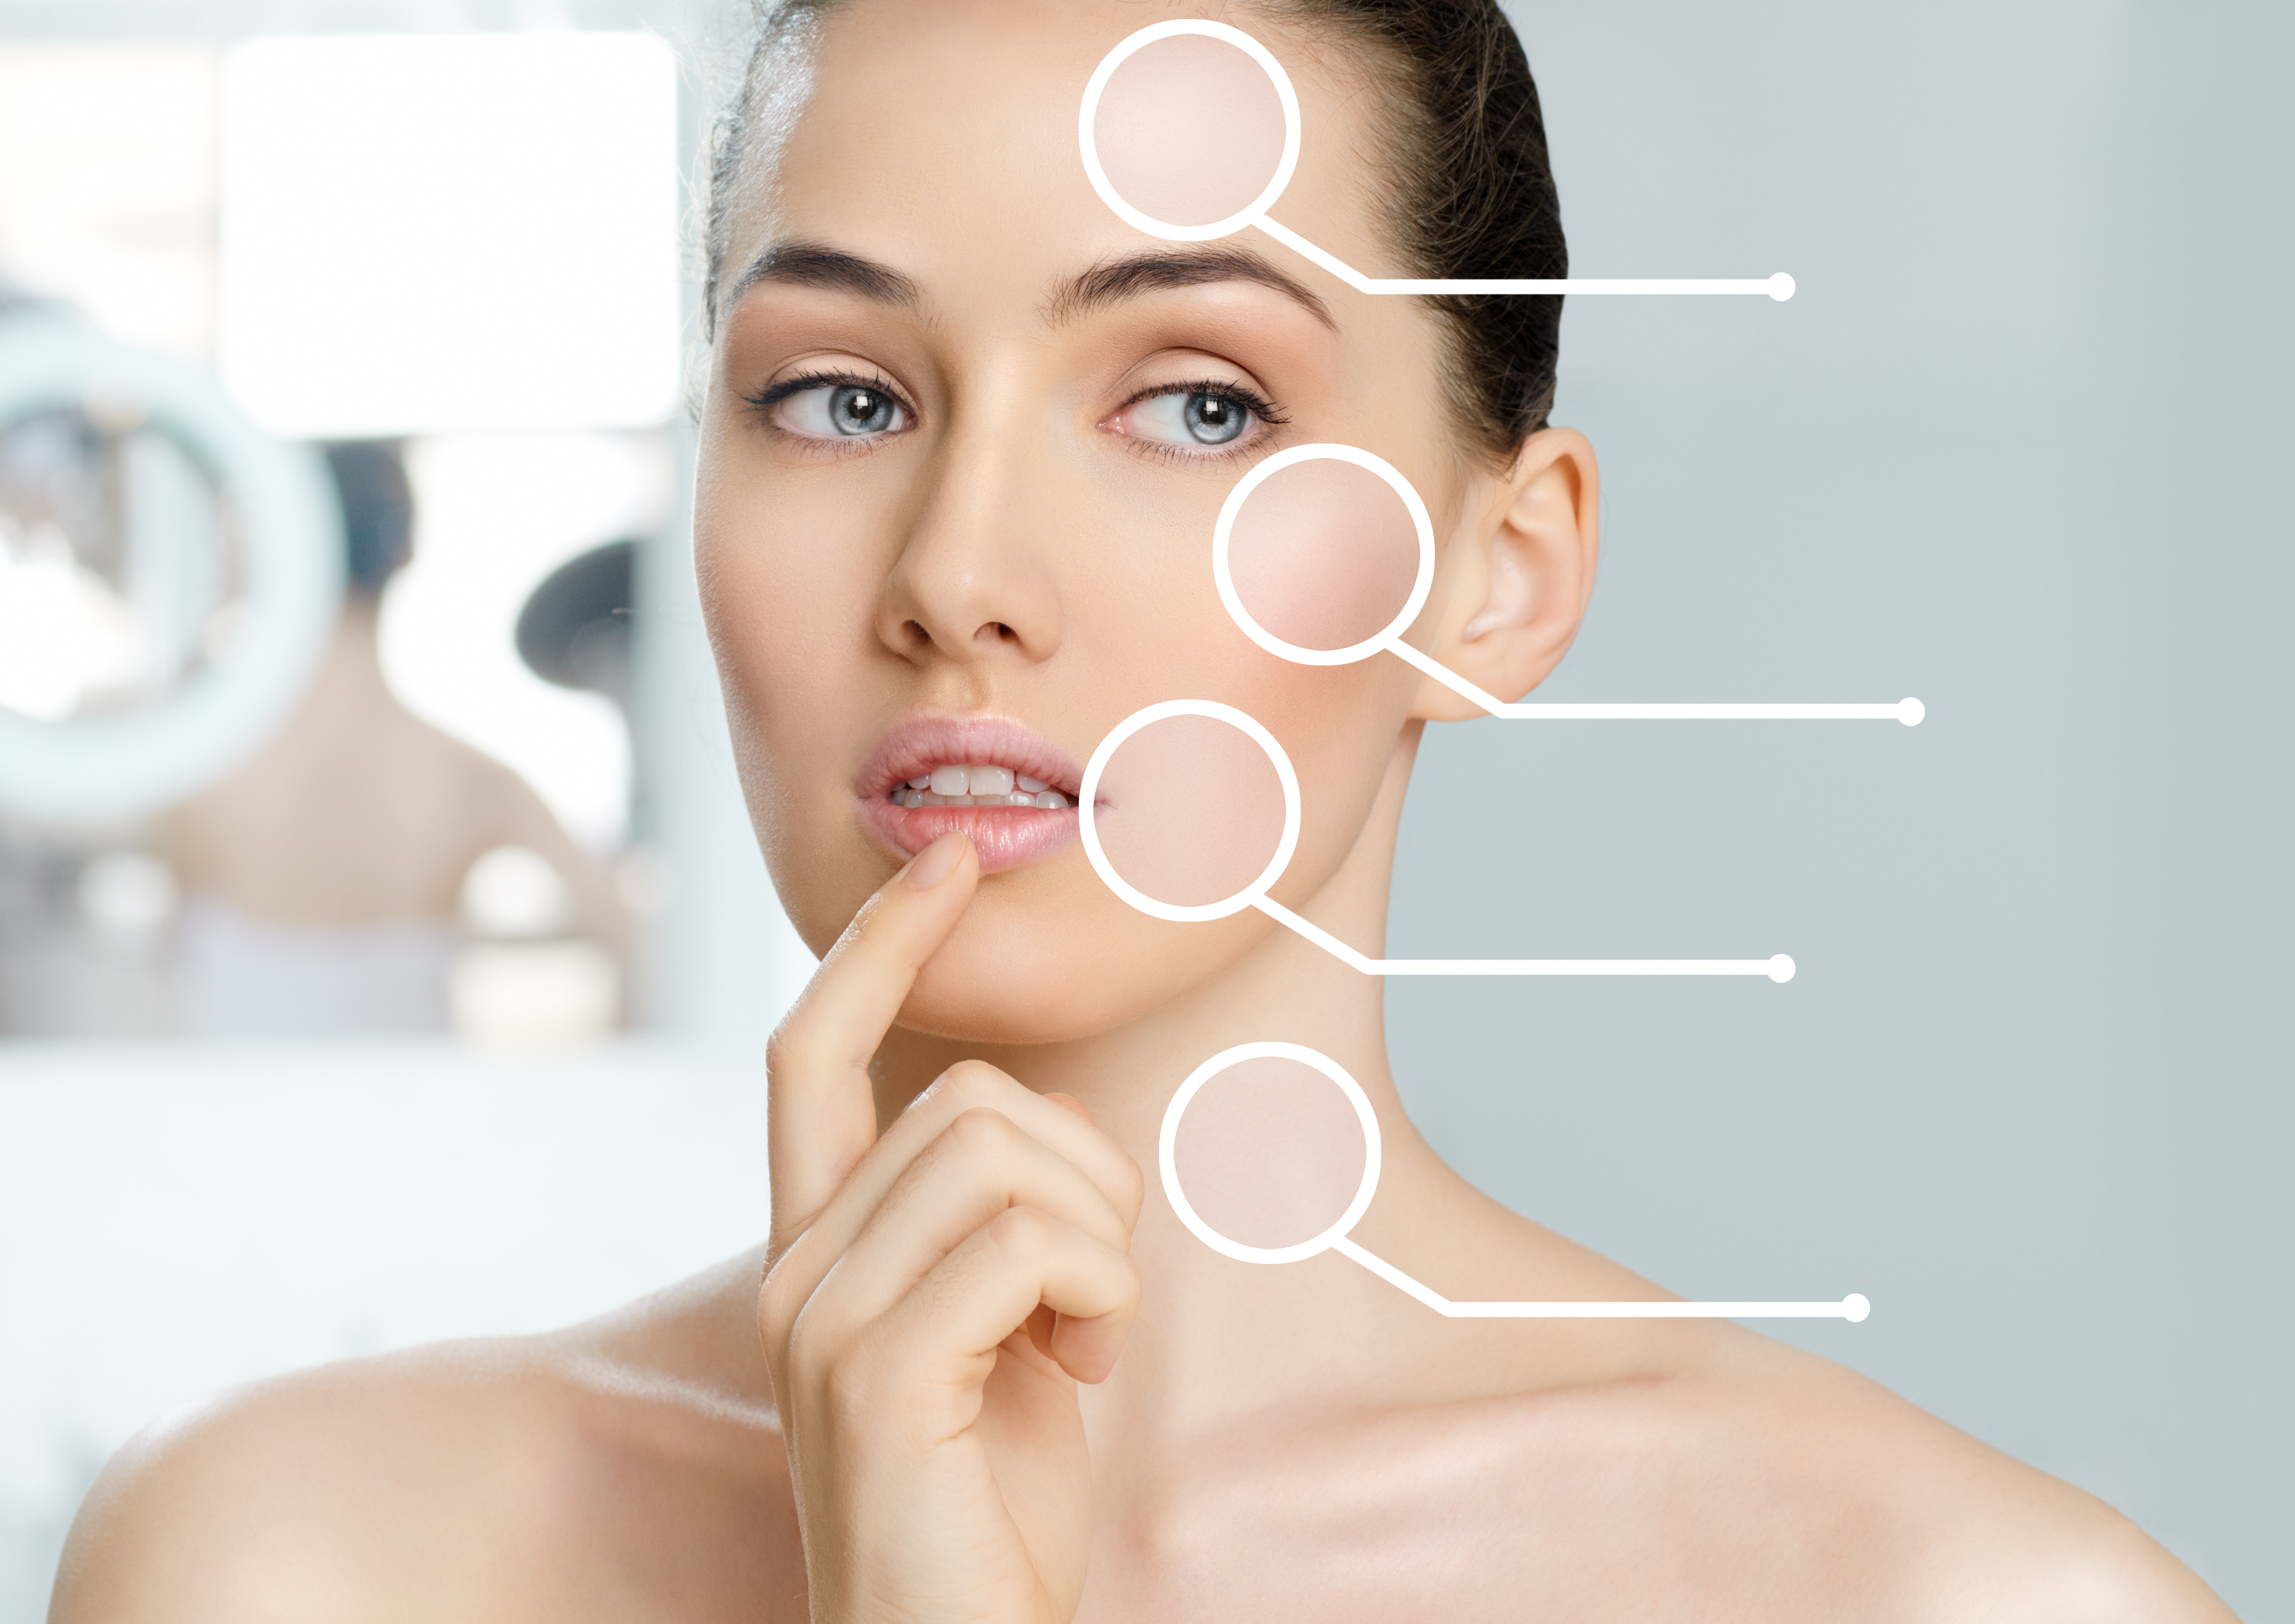 anti-pollution skincare products market